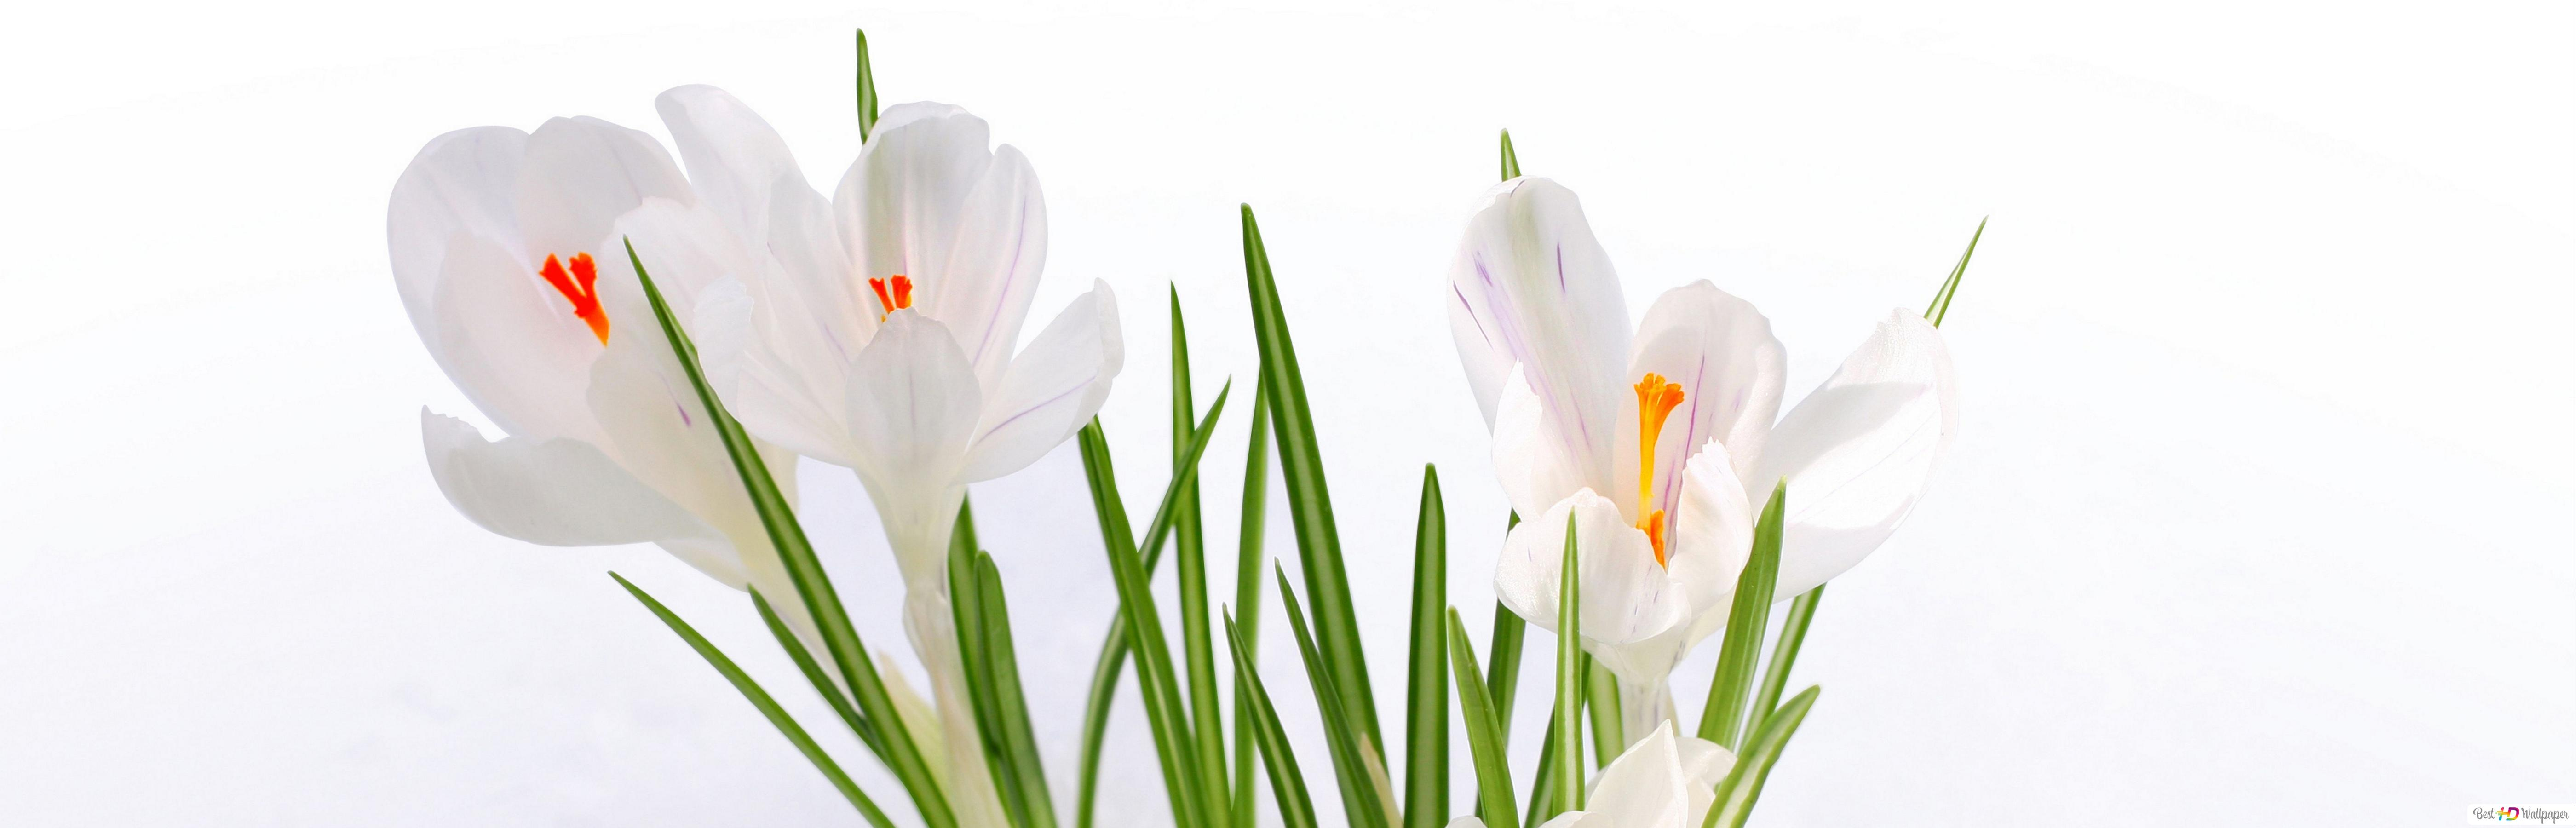 White Crocus Flowers In The Snow Hd Wallpaper Download